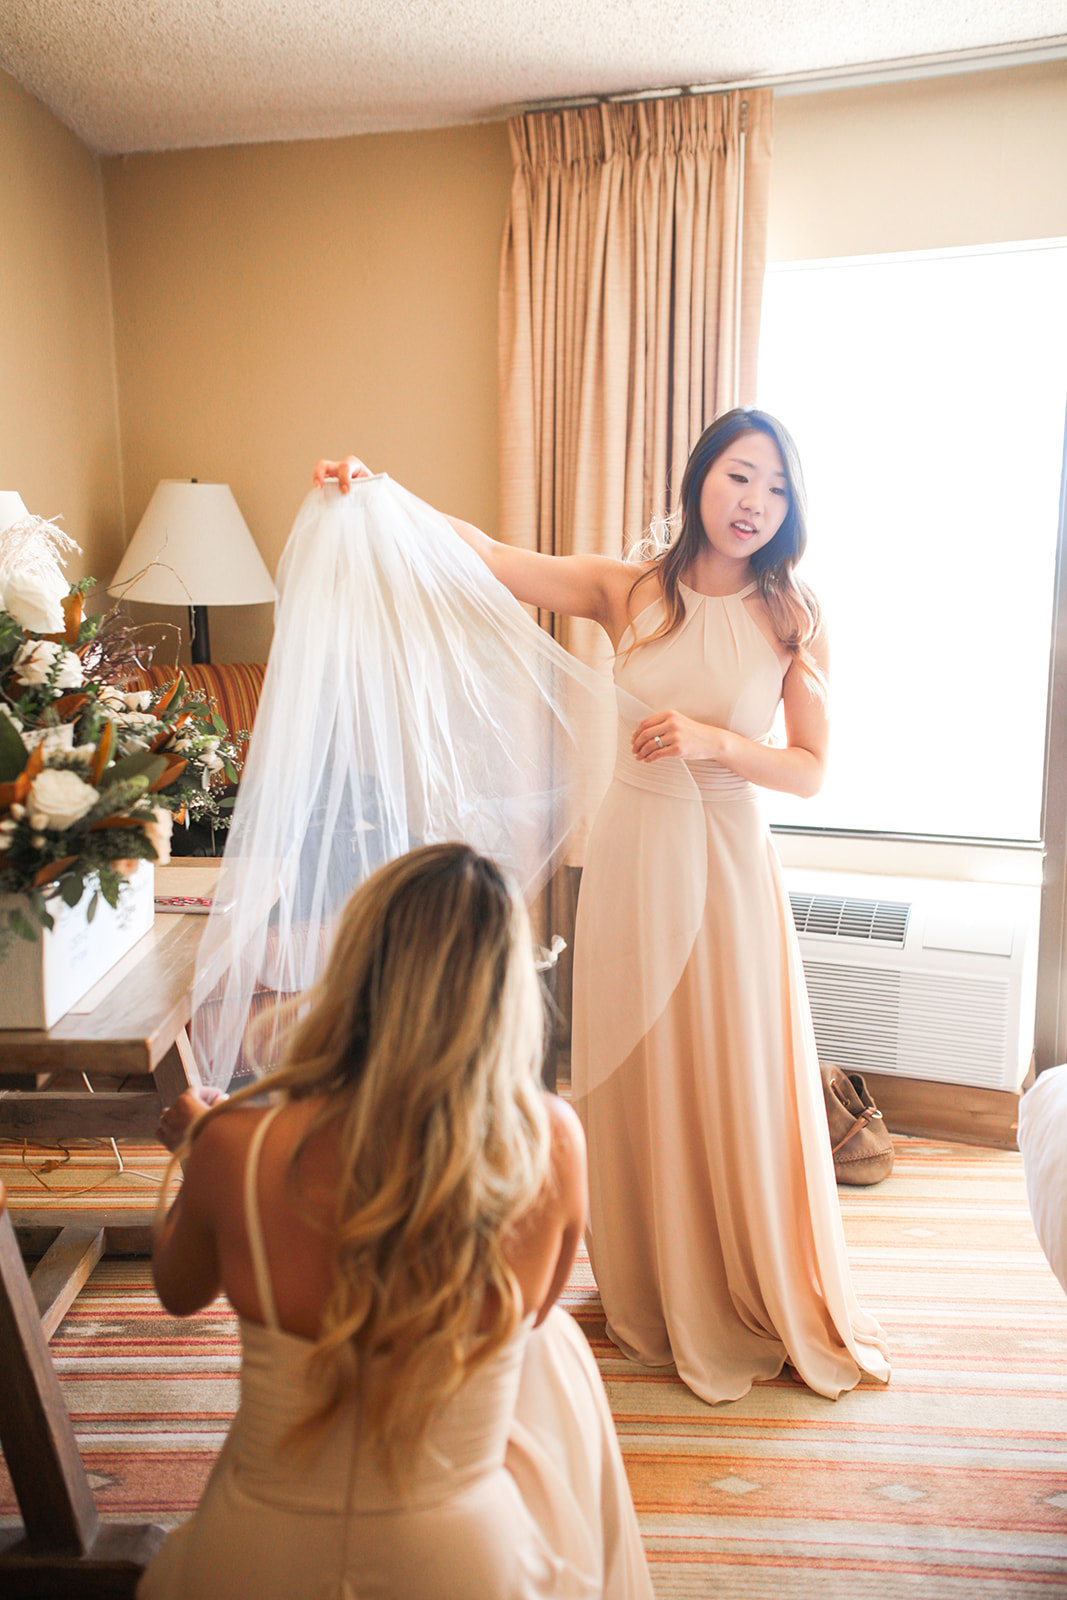 Albuquerque Wedding Photographer_Hotel Albuquerque_www.tylerbrooke.com_Kate Kauffman_017